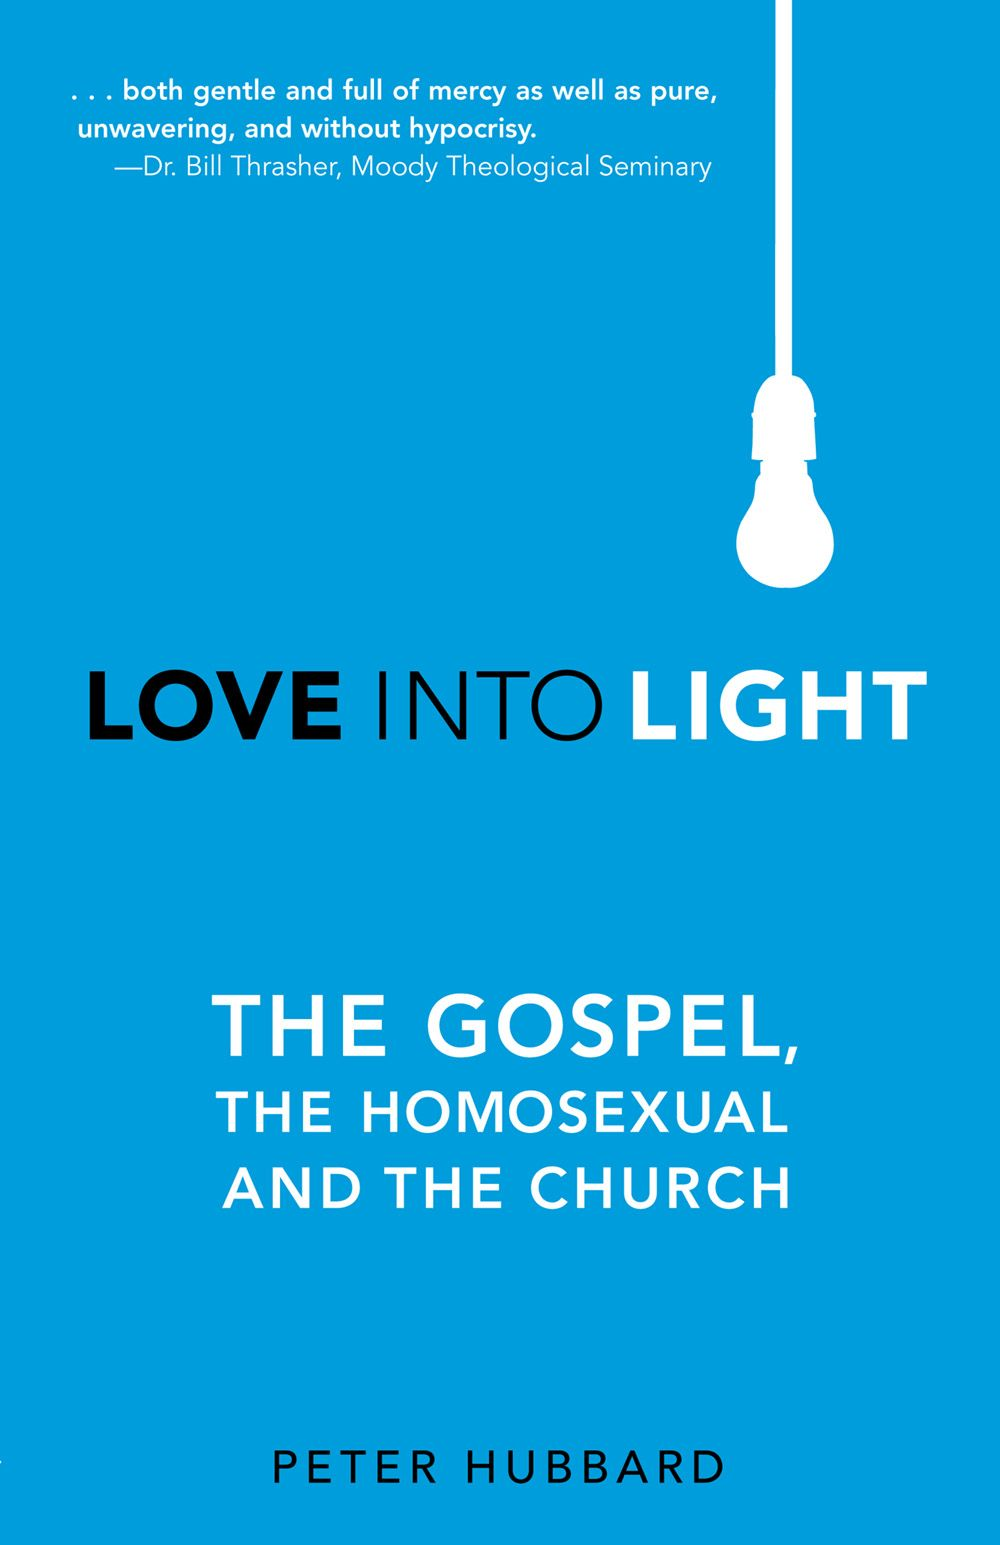 Love Into Light: The Gospel, the Homosexual and the Church {audio} by Peter Hubbard  #Pastor #ChristianNonFiction #ChristianLiving #Homosexuality #AudioBook